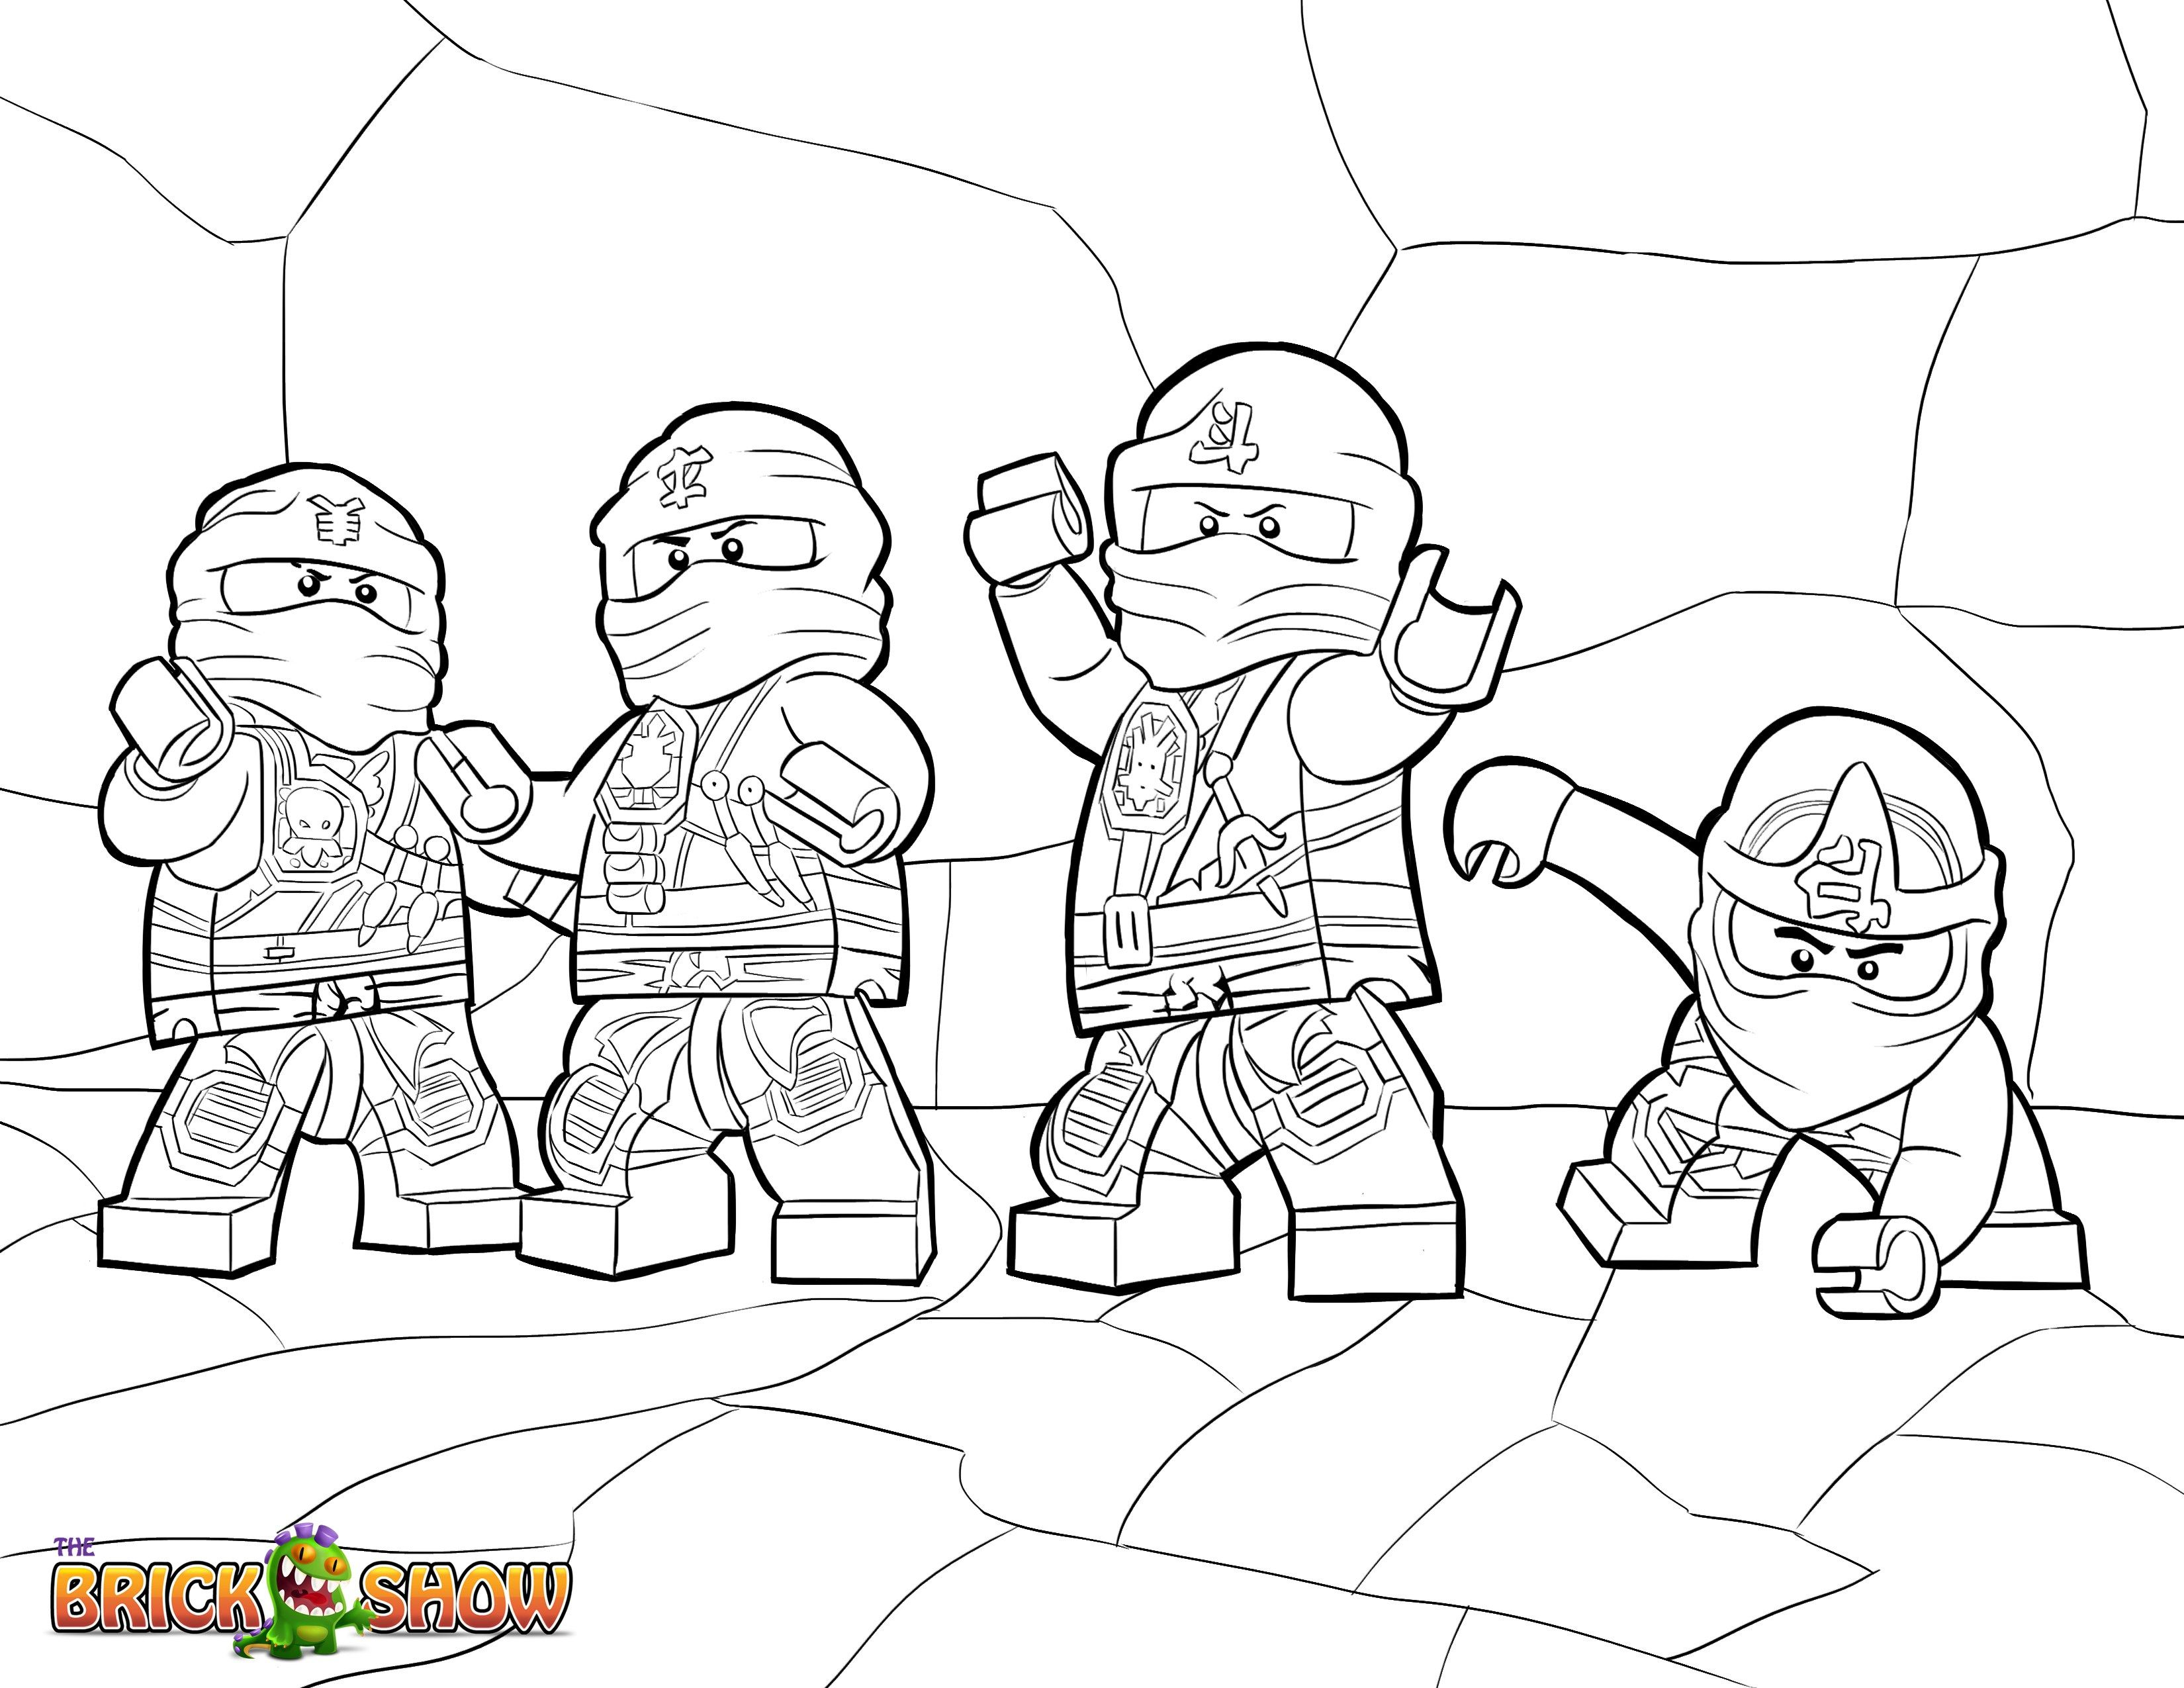 22 Creative Picture Of Ninjago Coloring Pages Davemelillo Com Ninjago Coloring Pages Lego Coloring Pages Lego Movie Coloring Pages